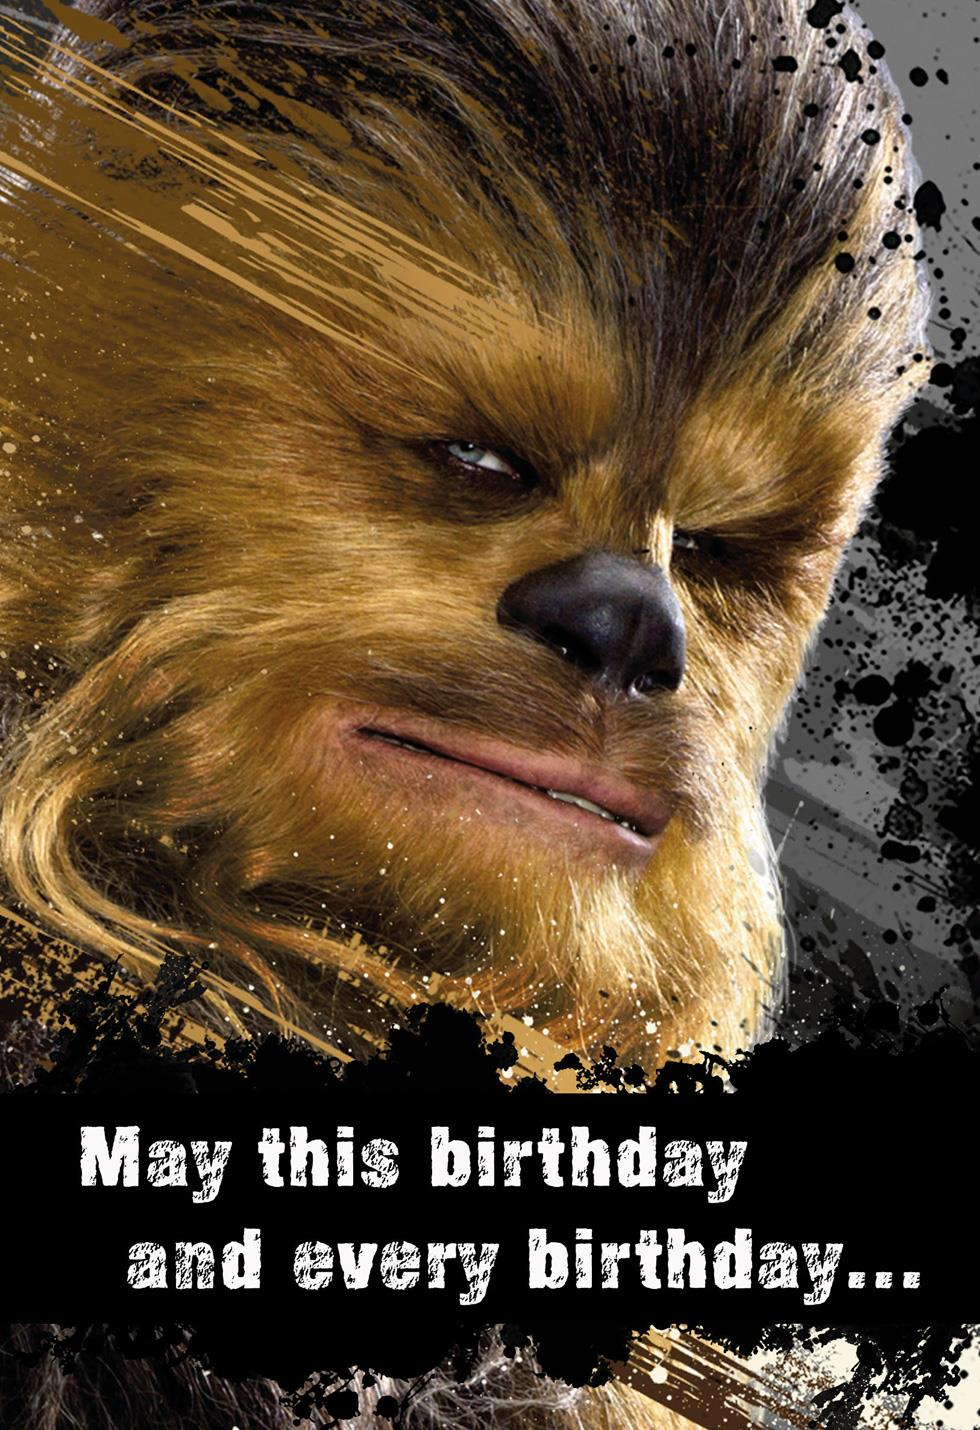 Star Wars Chewbacca Good Hair Day Birthday Sound Card